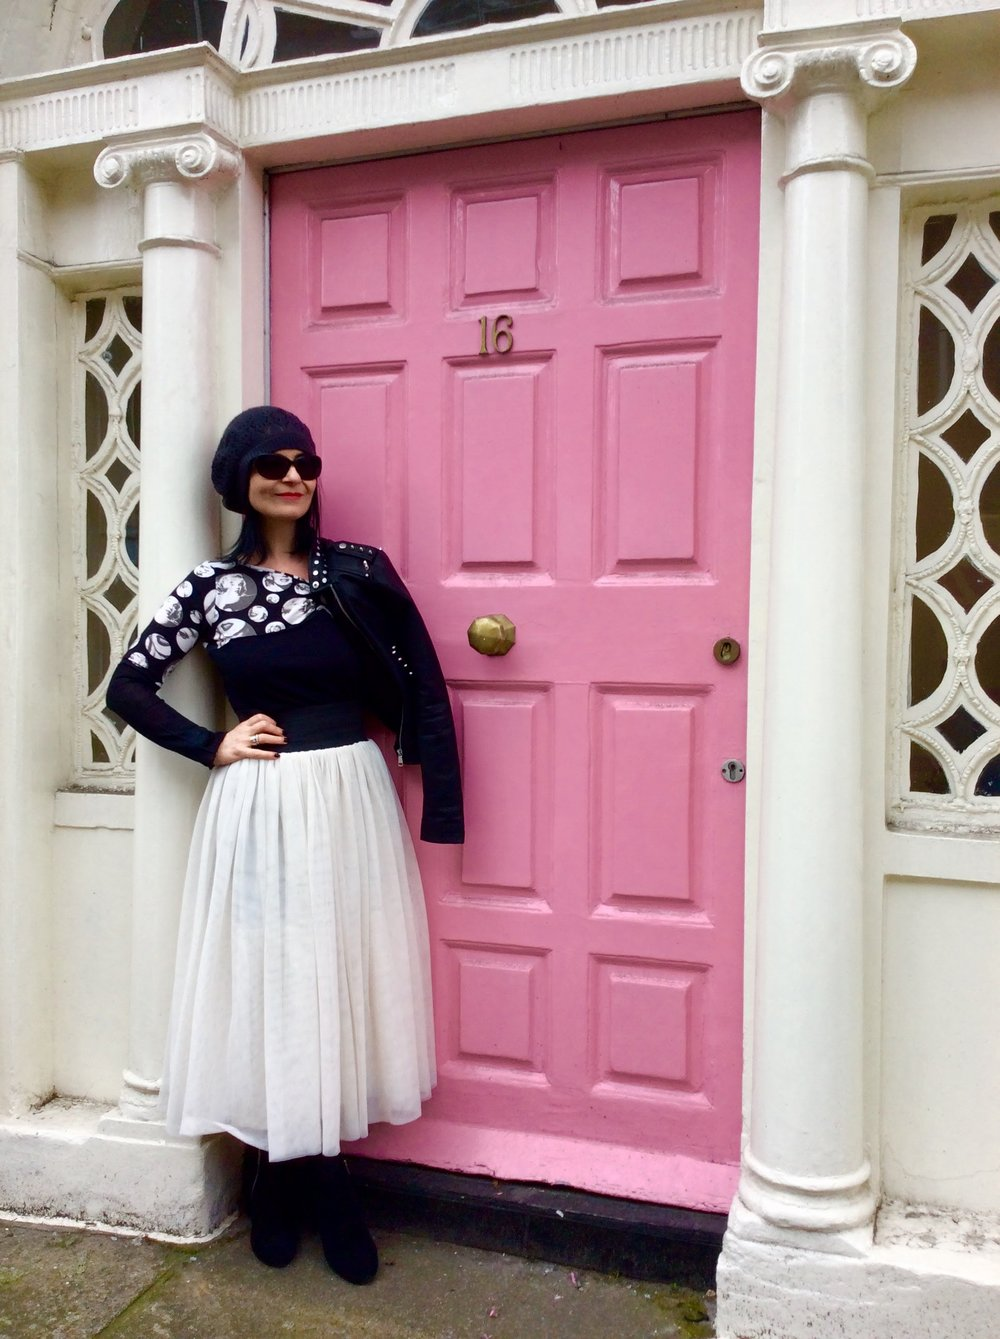 This look completely thrifted from a charity Shop!